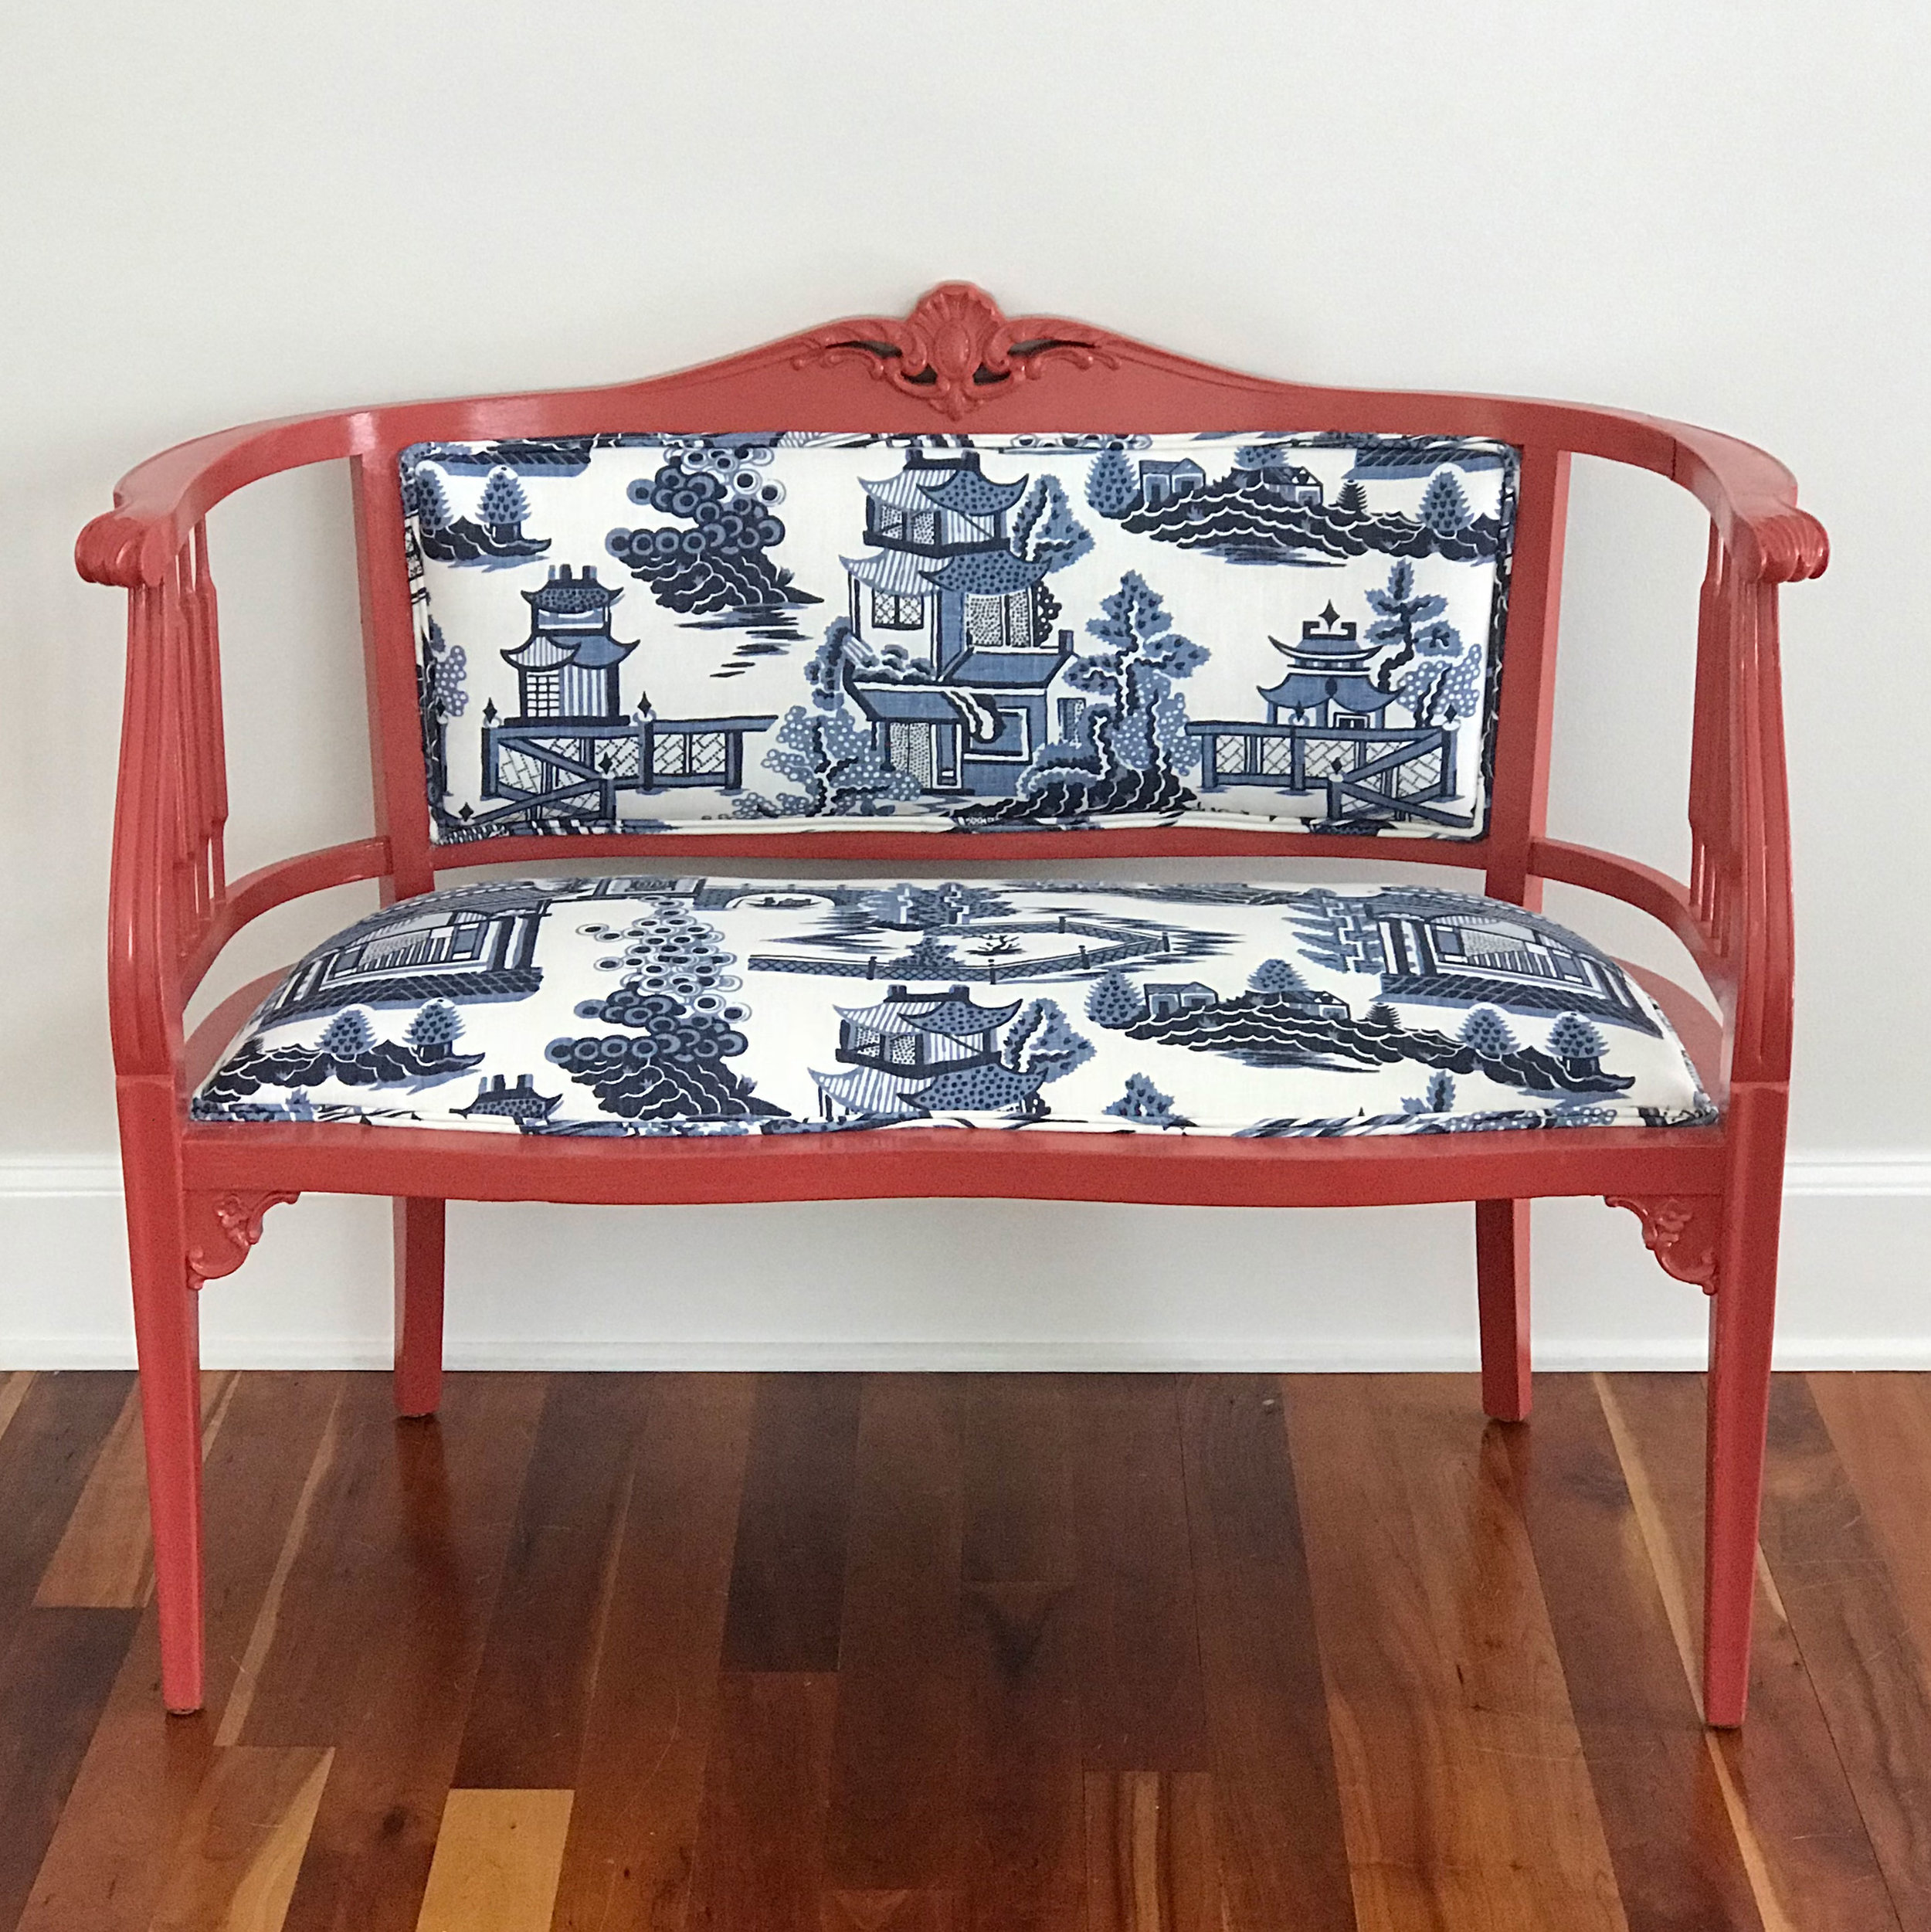 Beautiful antique bench painted in a vibrant color, paired with reupholstery in a classic chinoiserie fabric